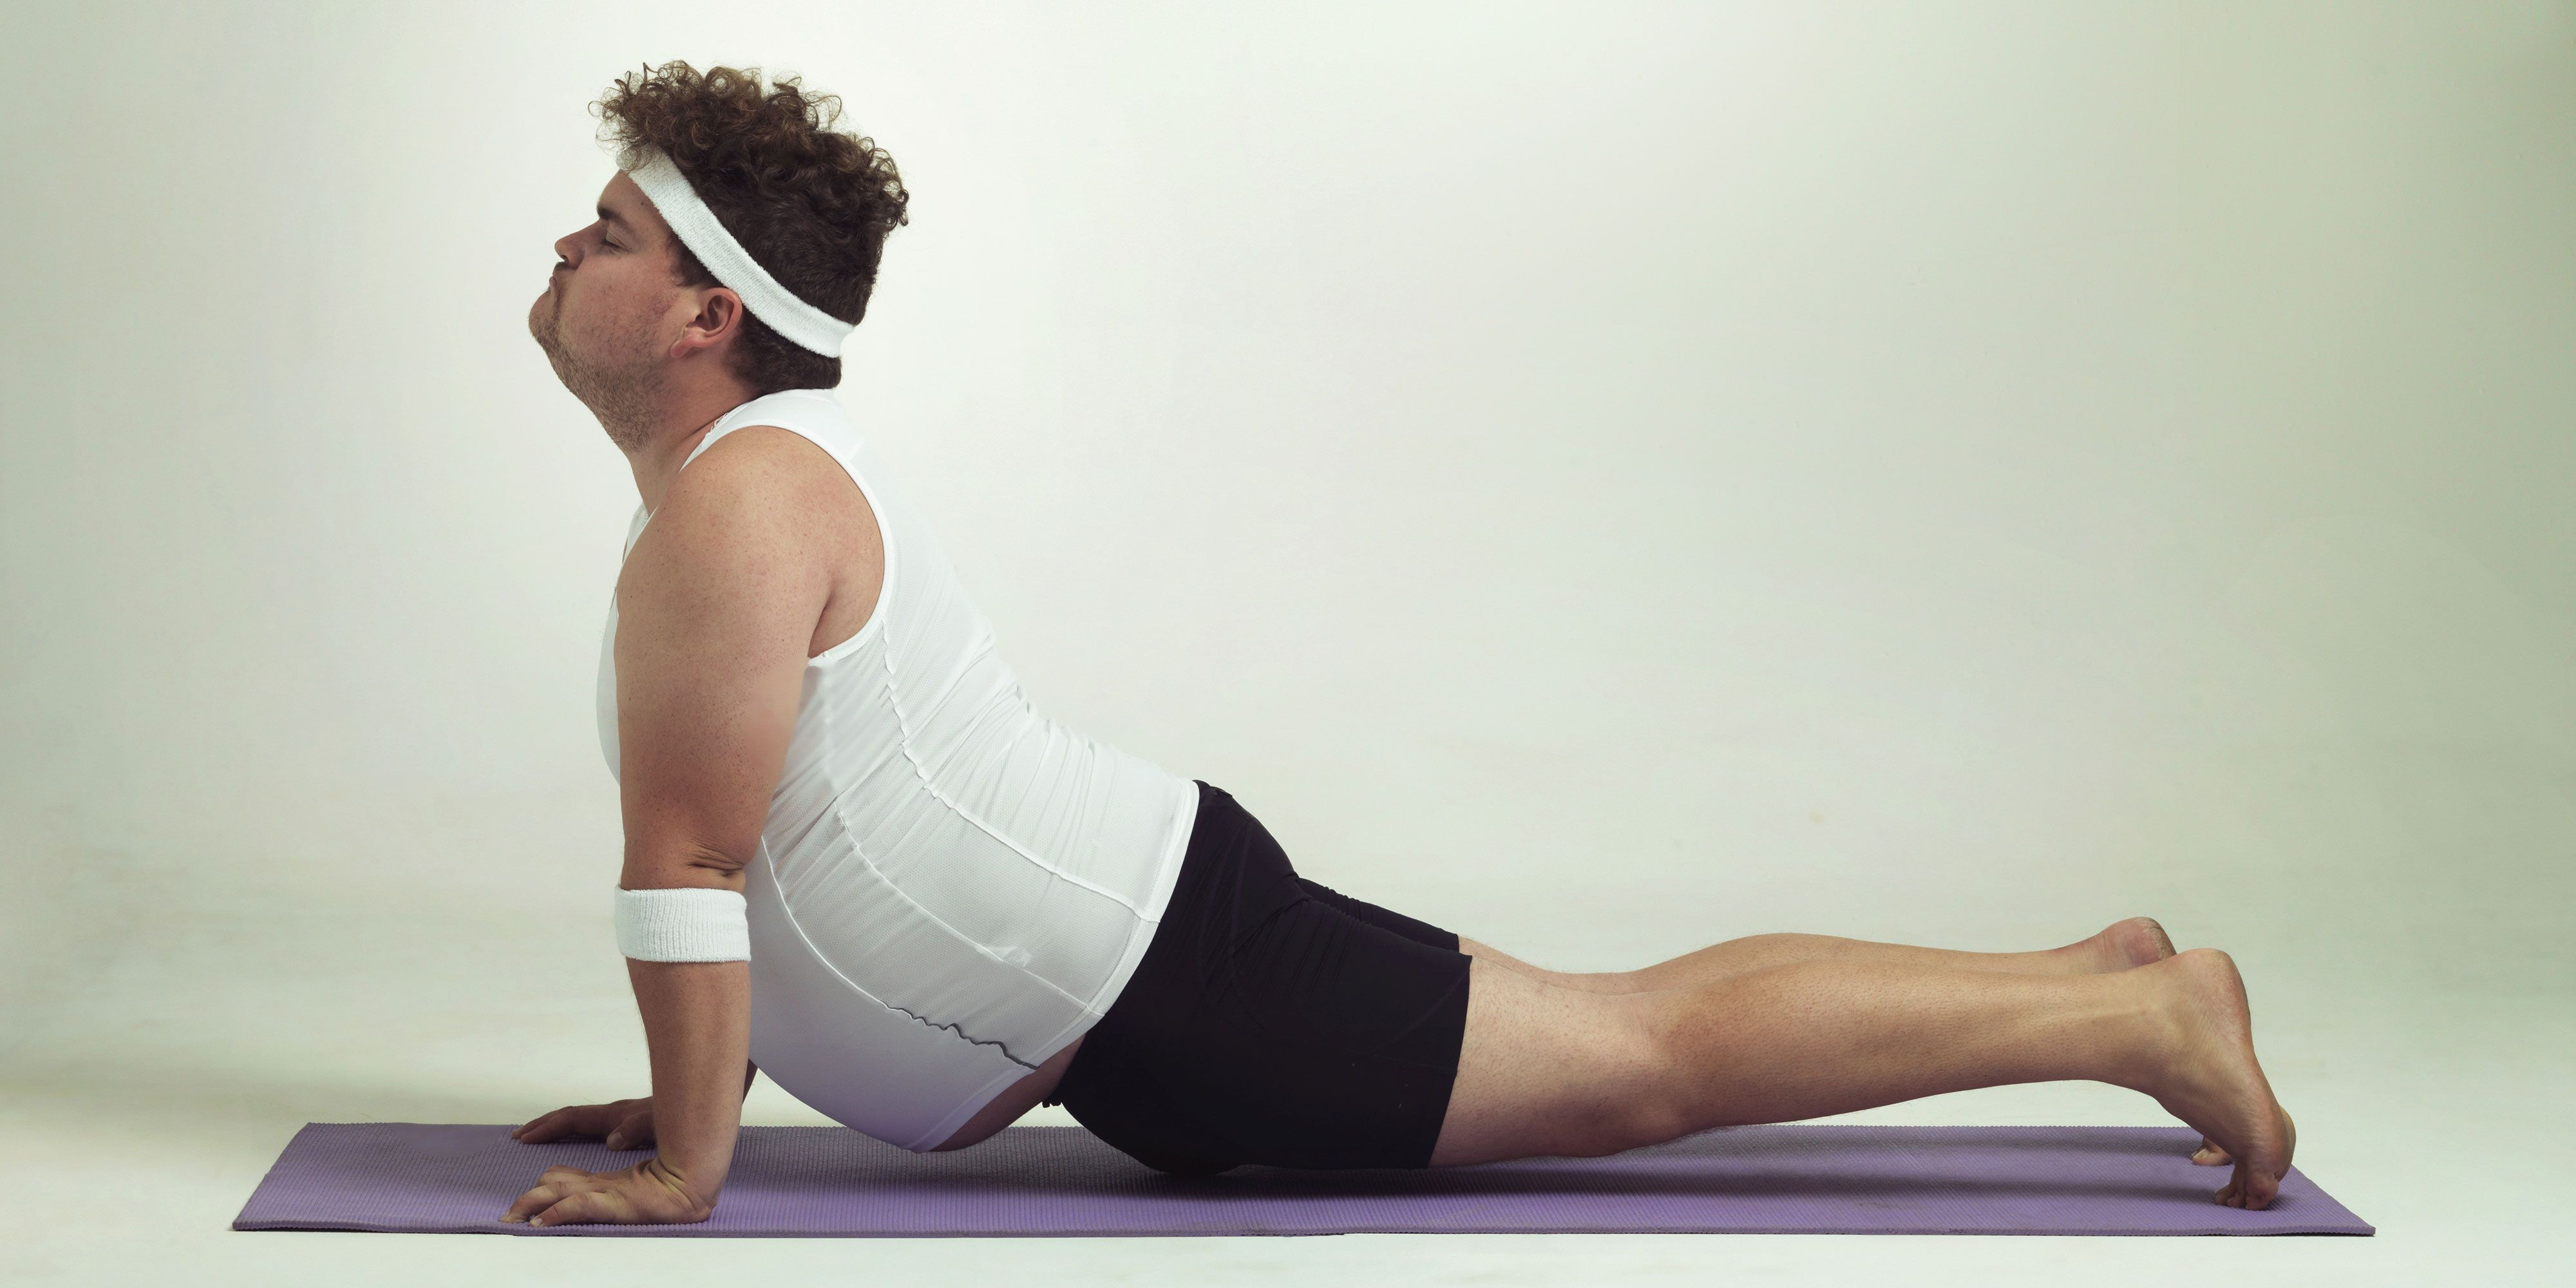 Pelvic floor exercises: a new solution